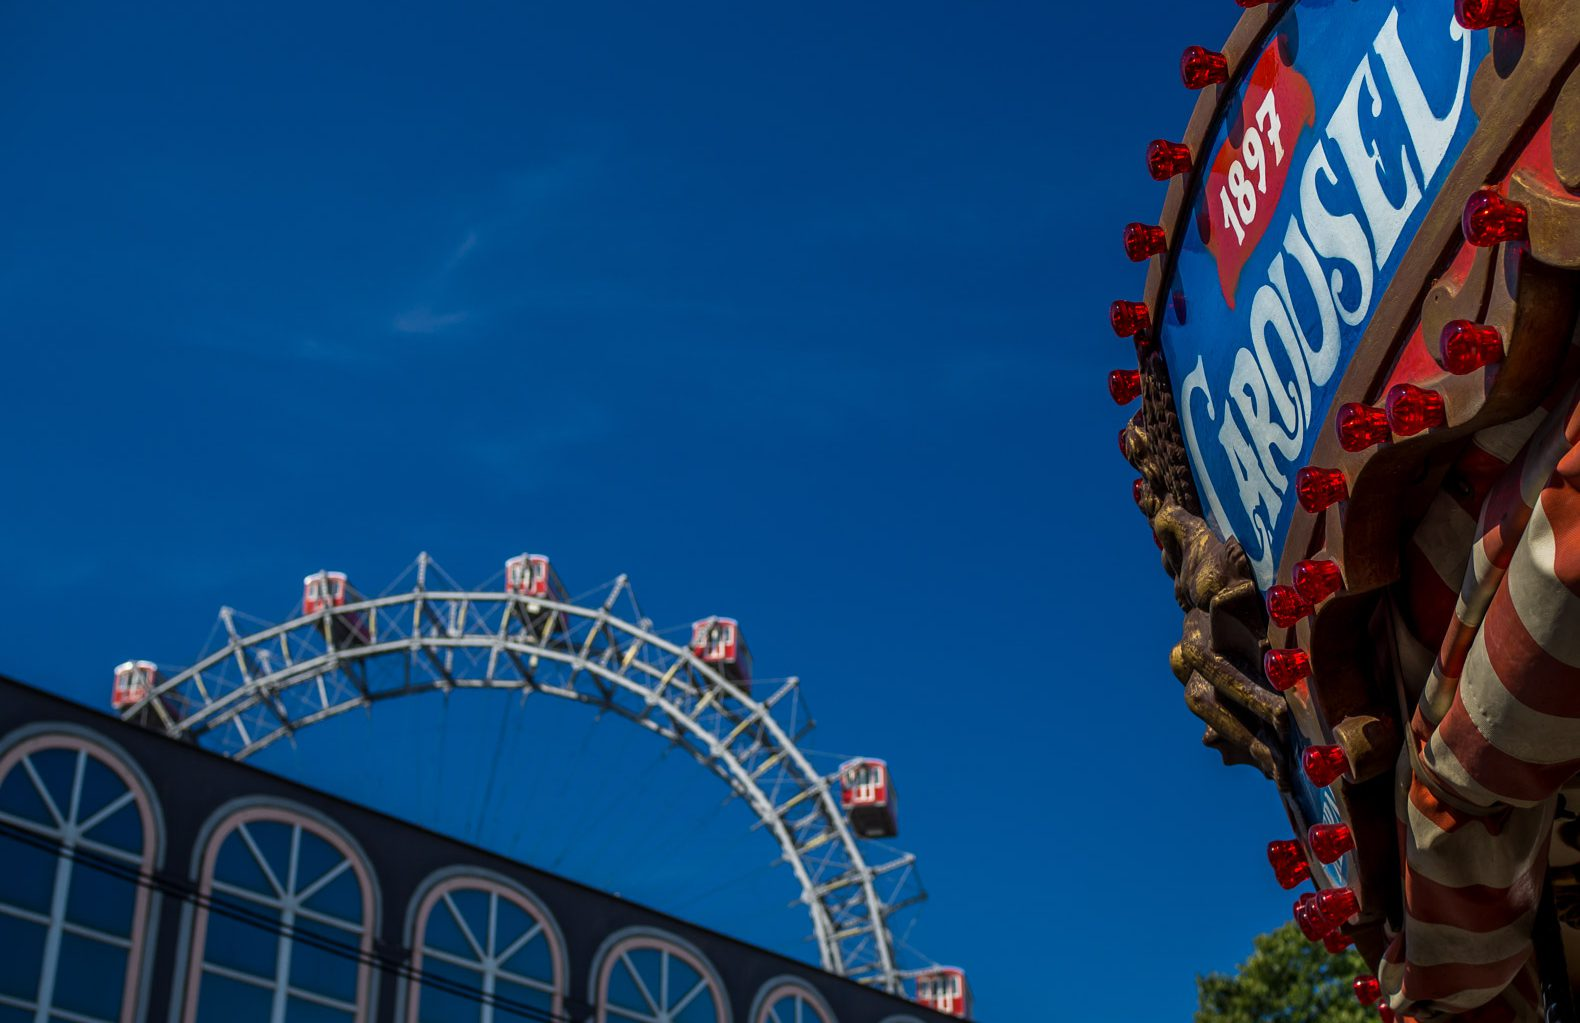 The Ferris Wheel and a Merry-Go-Round at the Prater in Vienna